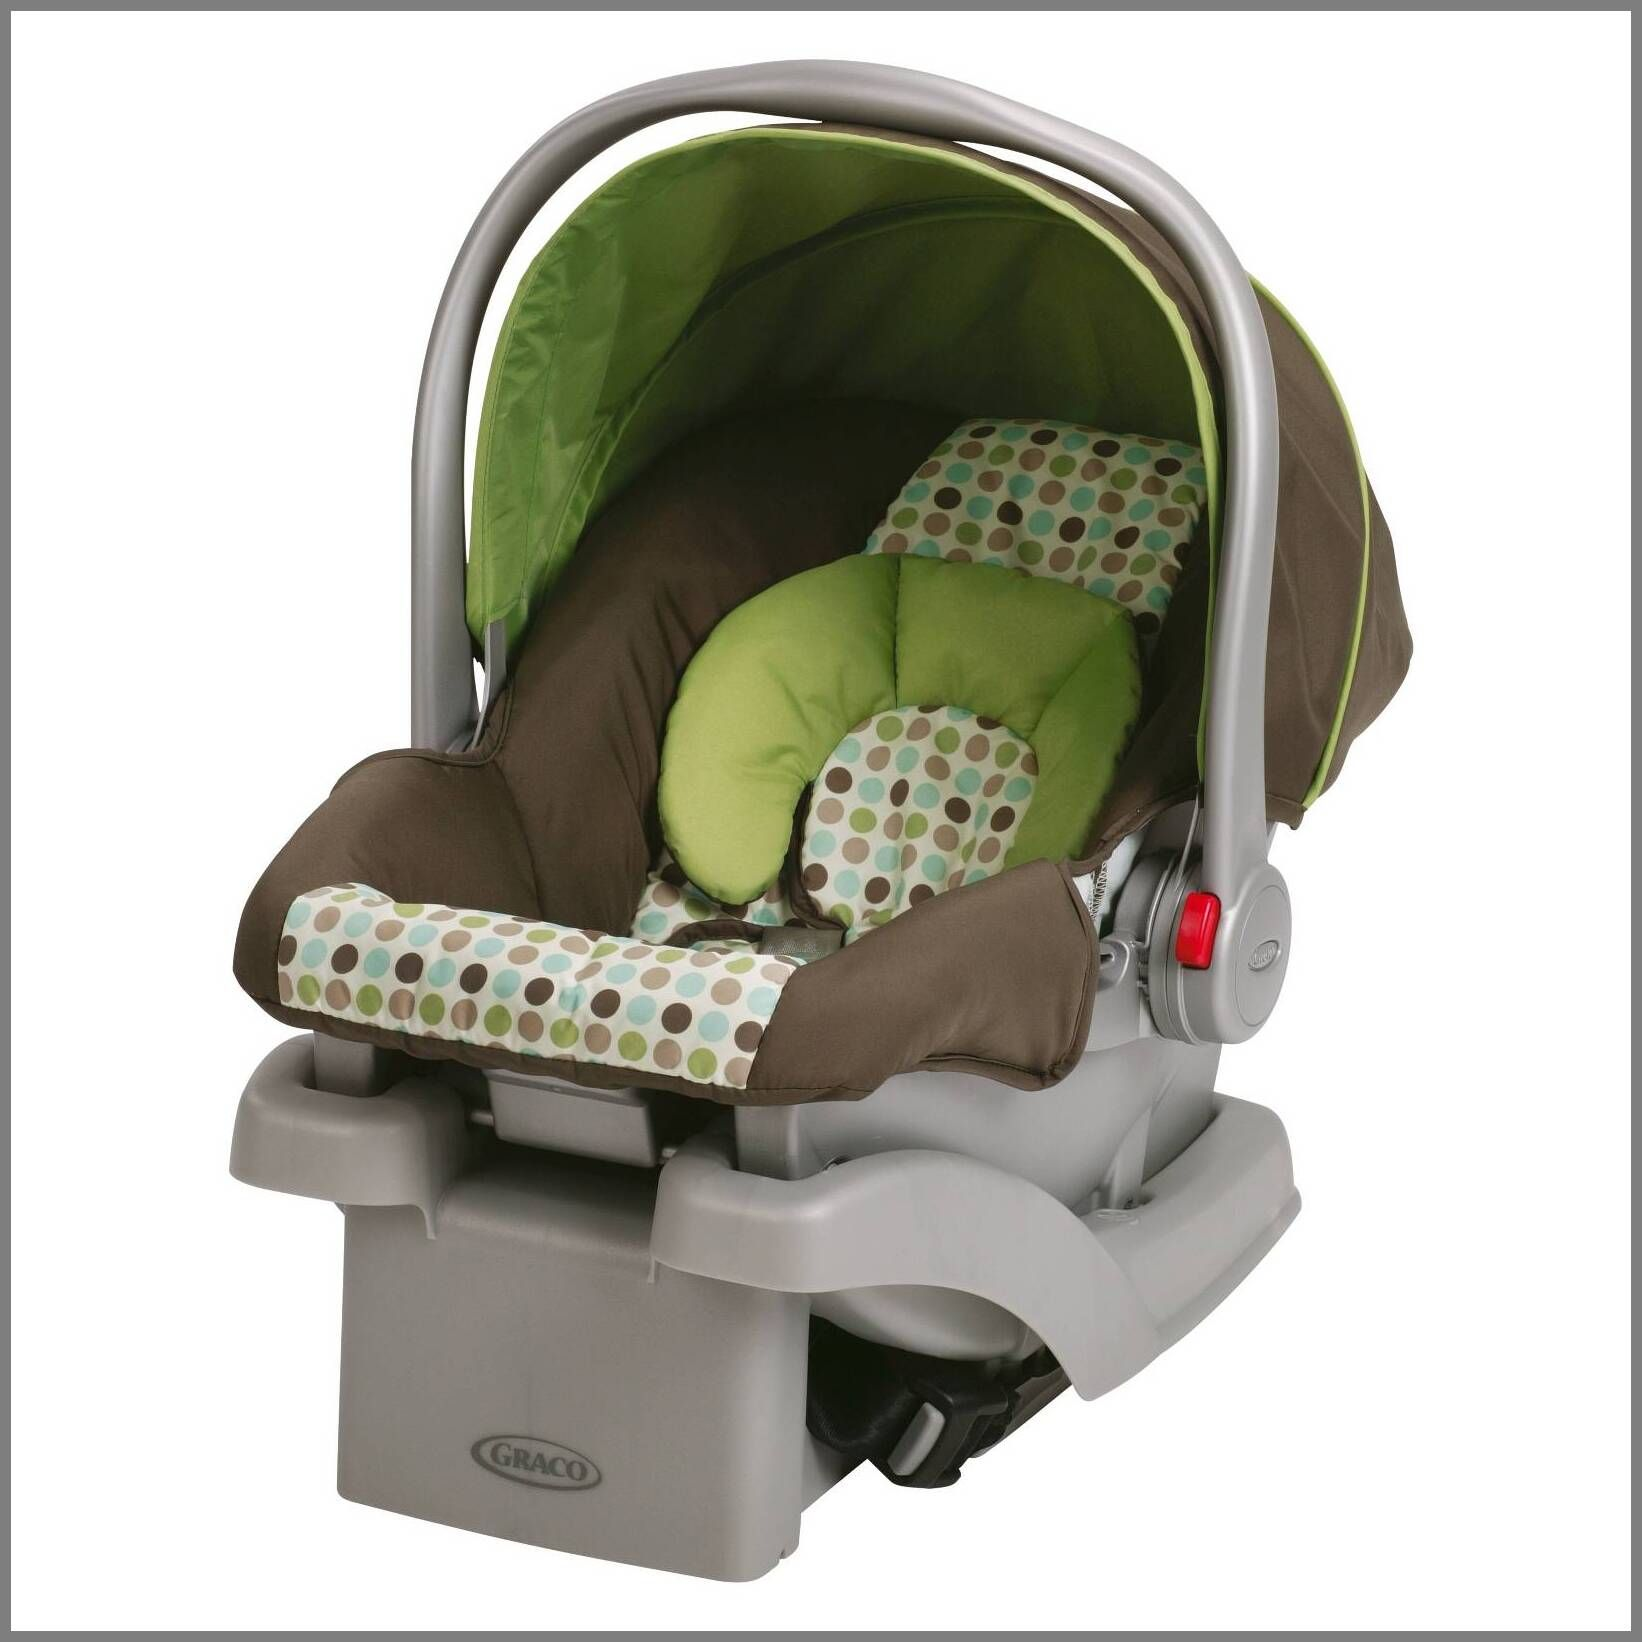 46++ Graco stroller and car seat target ideas